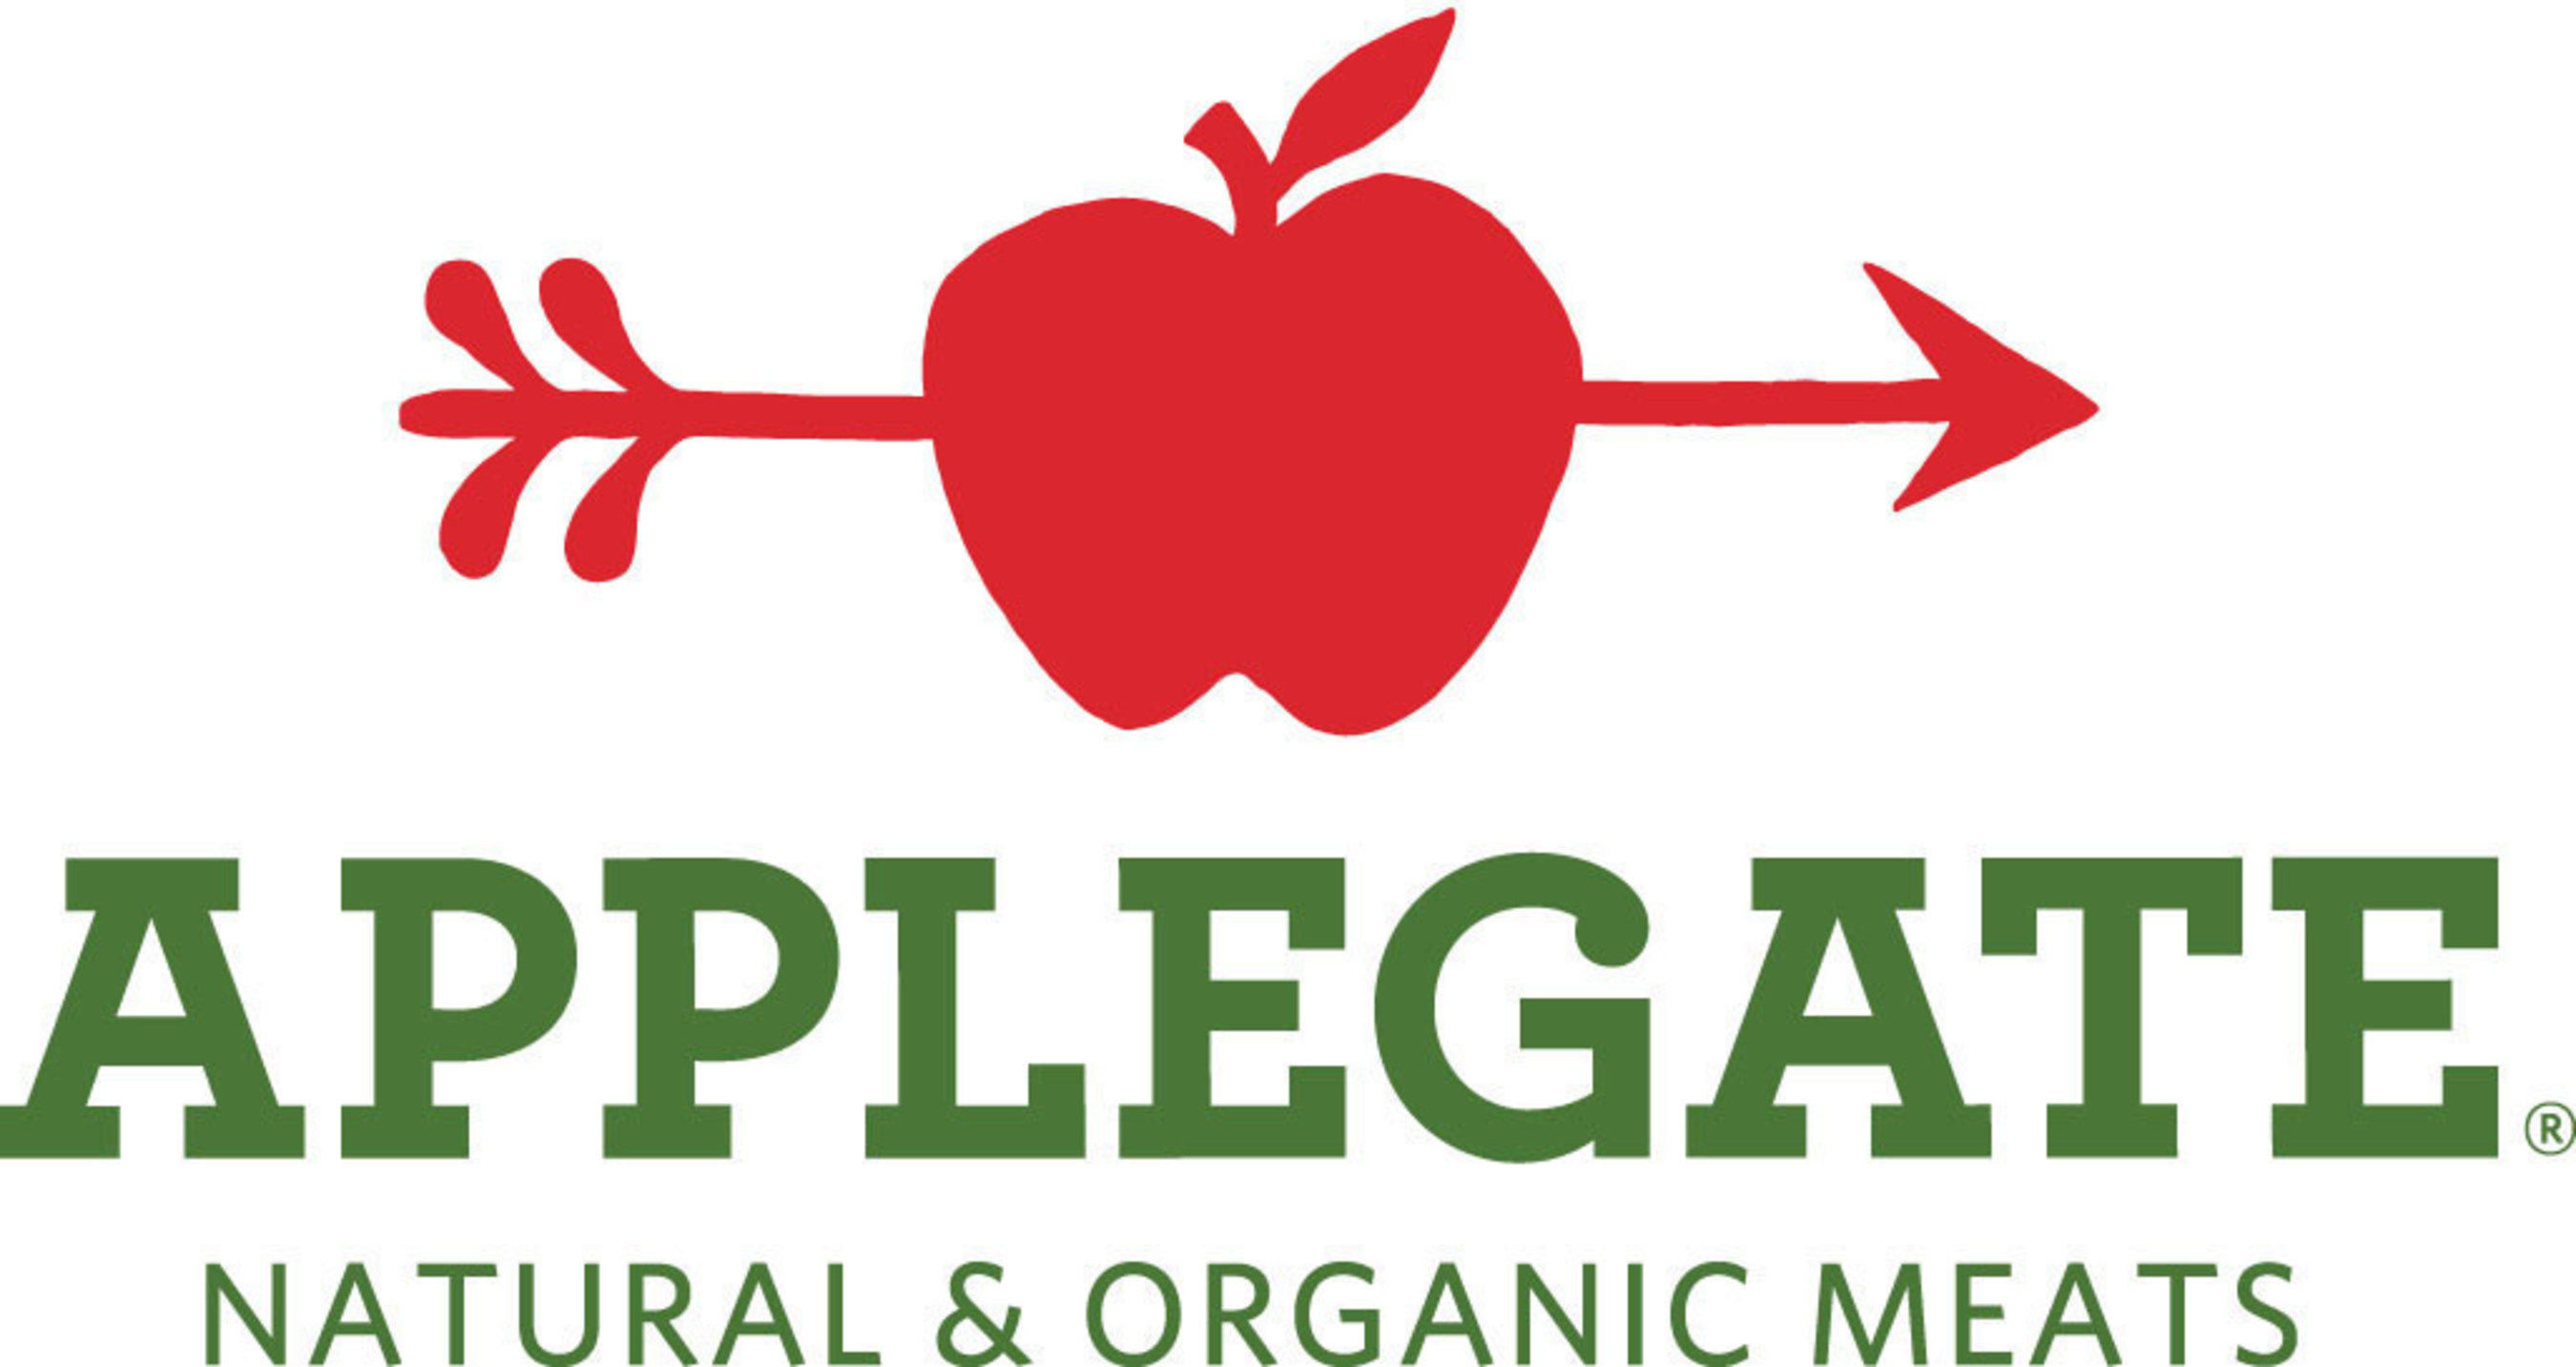 """Applegate, the nation's leading natural and organic meat brand, produces high-quality natural and organic hot dogs, bacon, sausages, deli meats, cheese and frozen products. We source our meat from family farms, where animals are treated with care and respect and are allowed to grow at their natural rate. That means no antibiotics and growth promotants. We believe this results in products that taste great and offer peace of mind, all part of our mission - """"Changing The Meat We Eat(R)."""""""